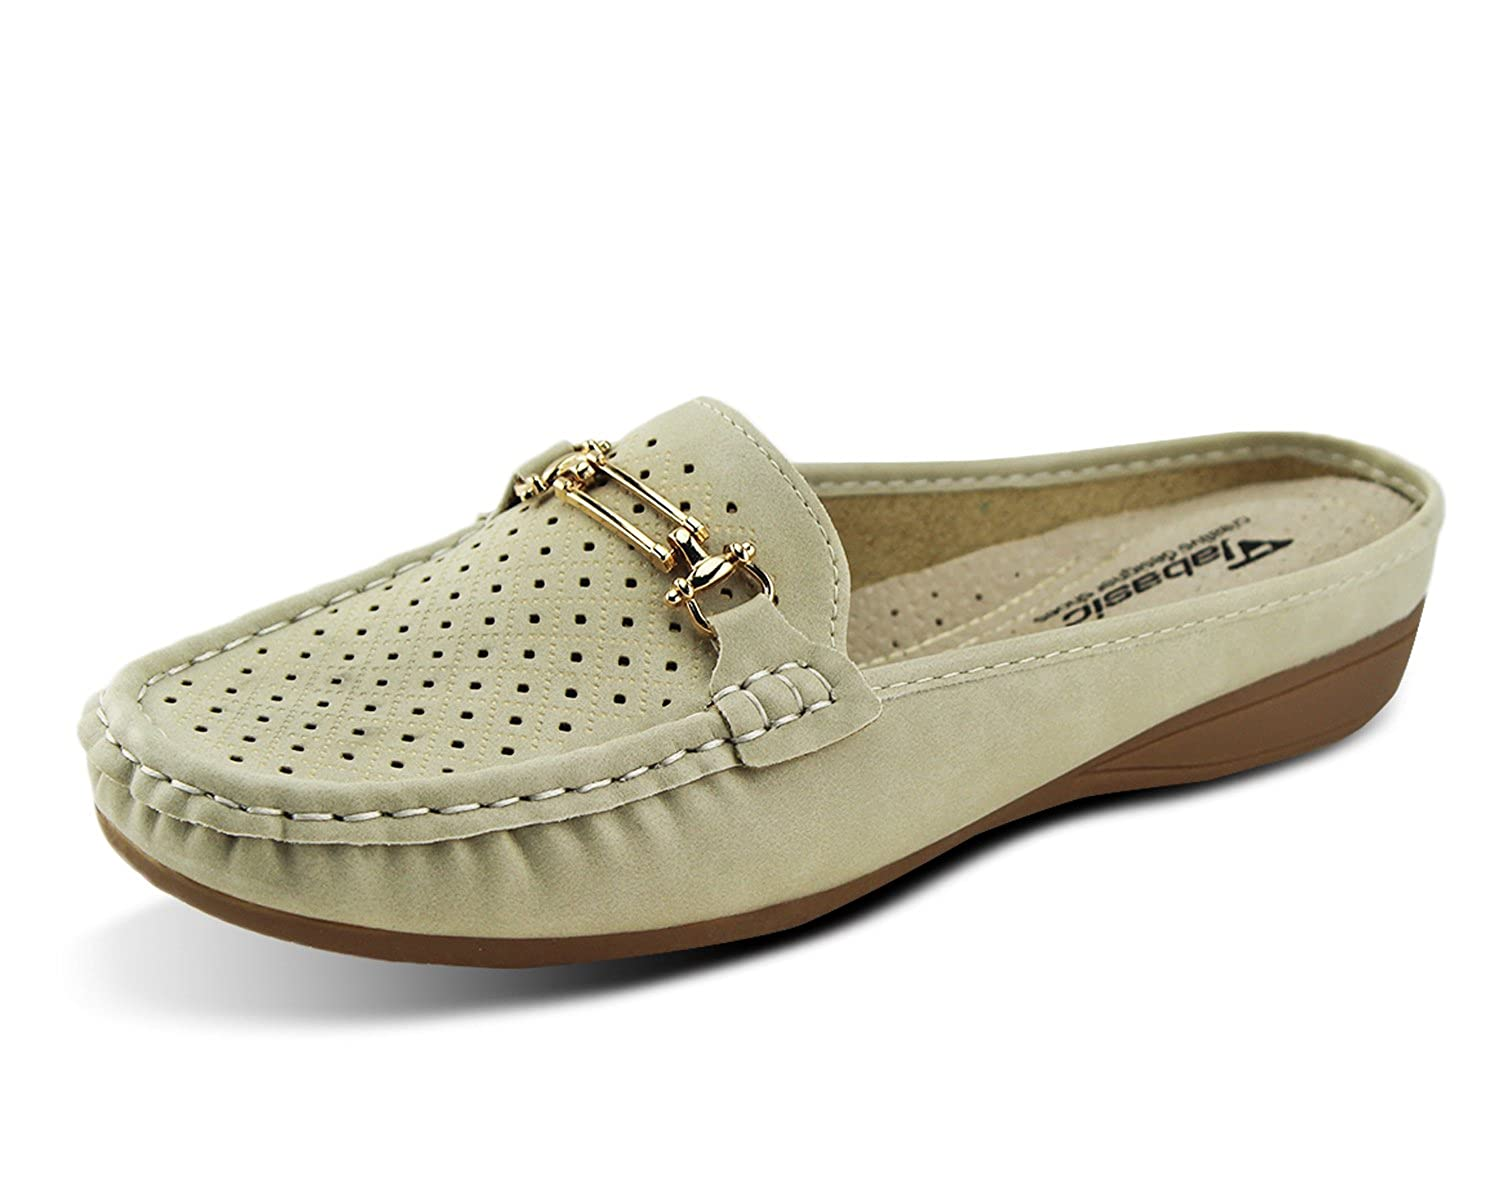 73513a08874 Amazon.com | Jabasic Women Easy Slide Mule Moccasins Buckle Penny Slip-On  Backless Loafer Shoes | Loafers & Slip-Ons